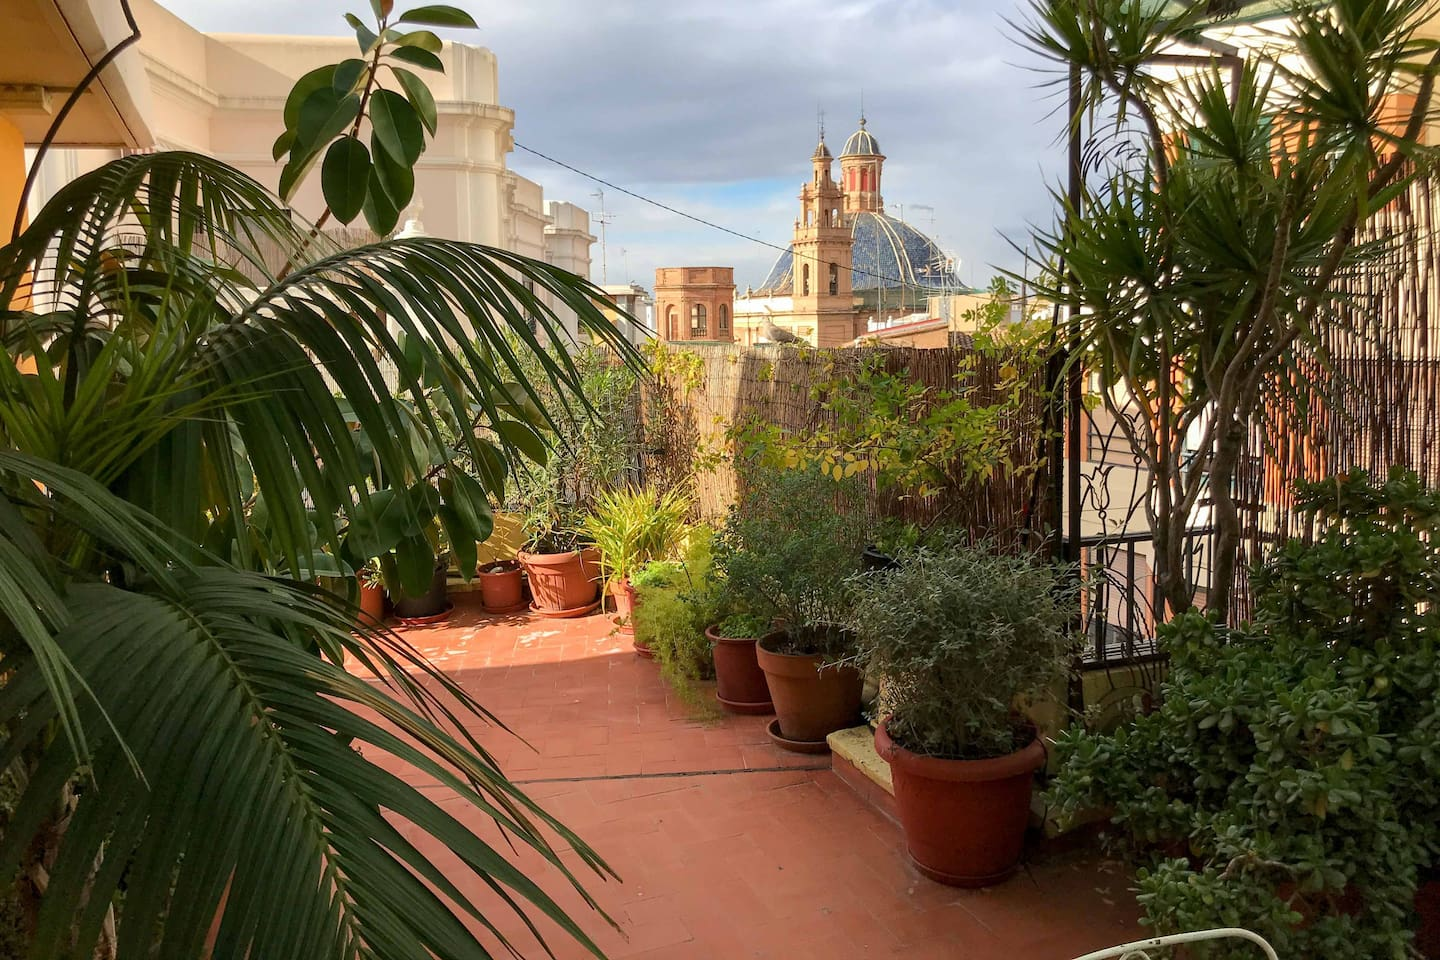 Open Plan Rooftop Apartment with Garden - Apartments for Rent in ...